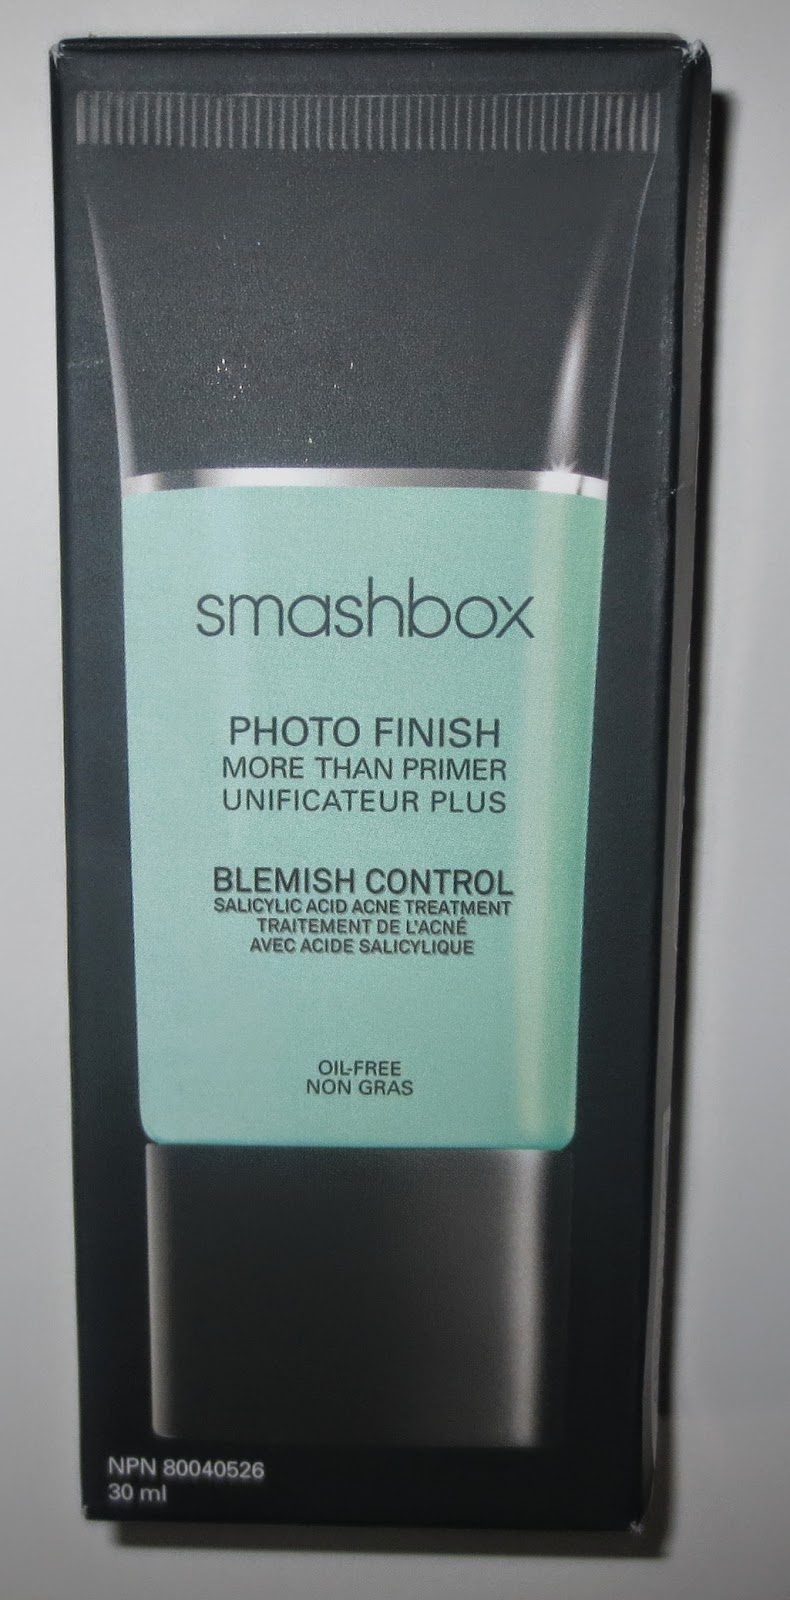 Smashbox Photo Finish More Than Primer Blemish Control Packaging